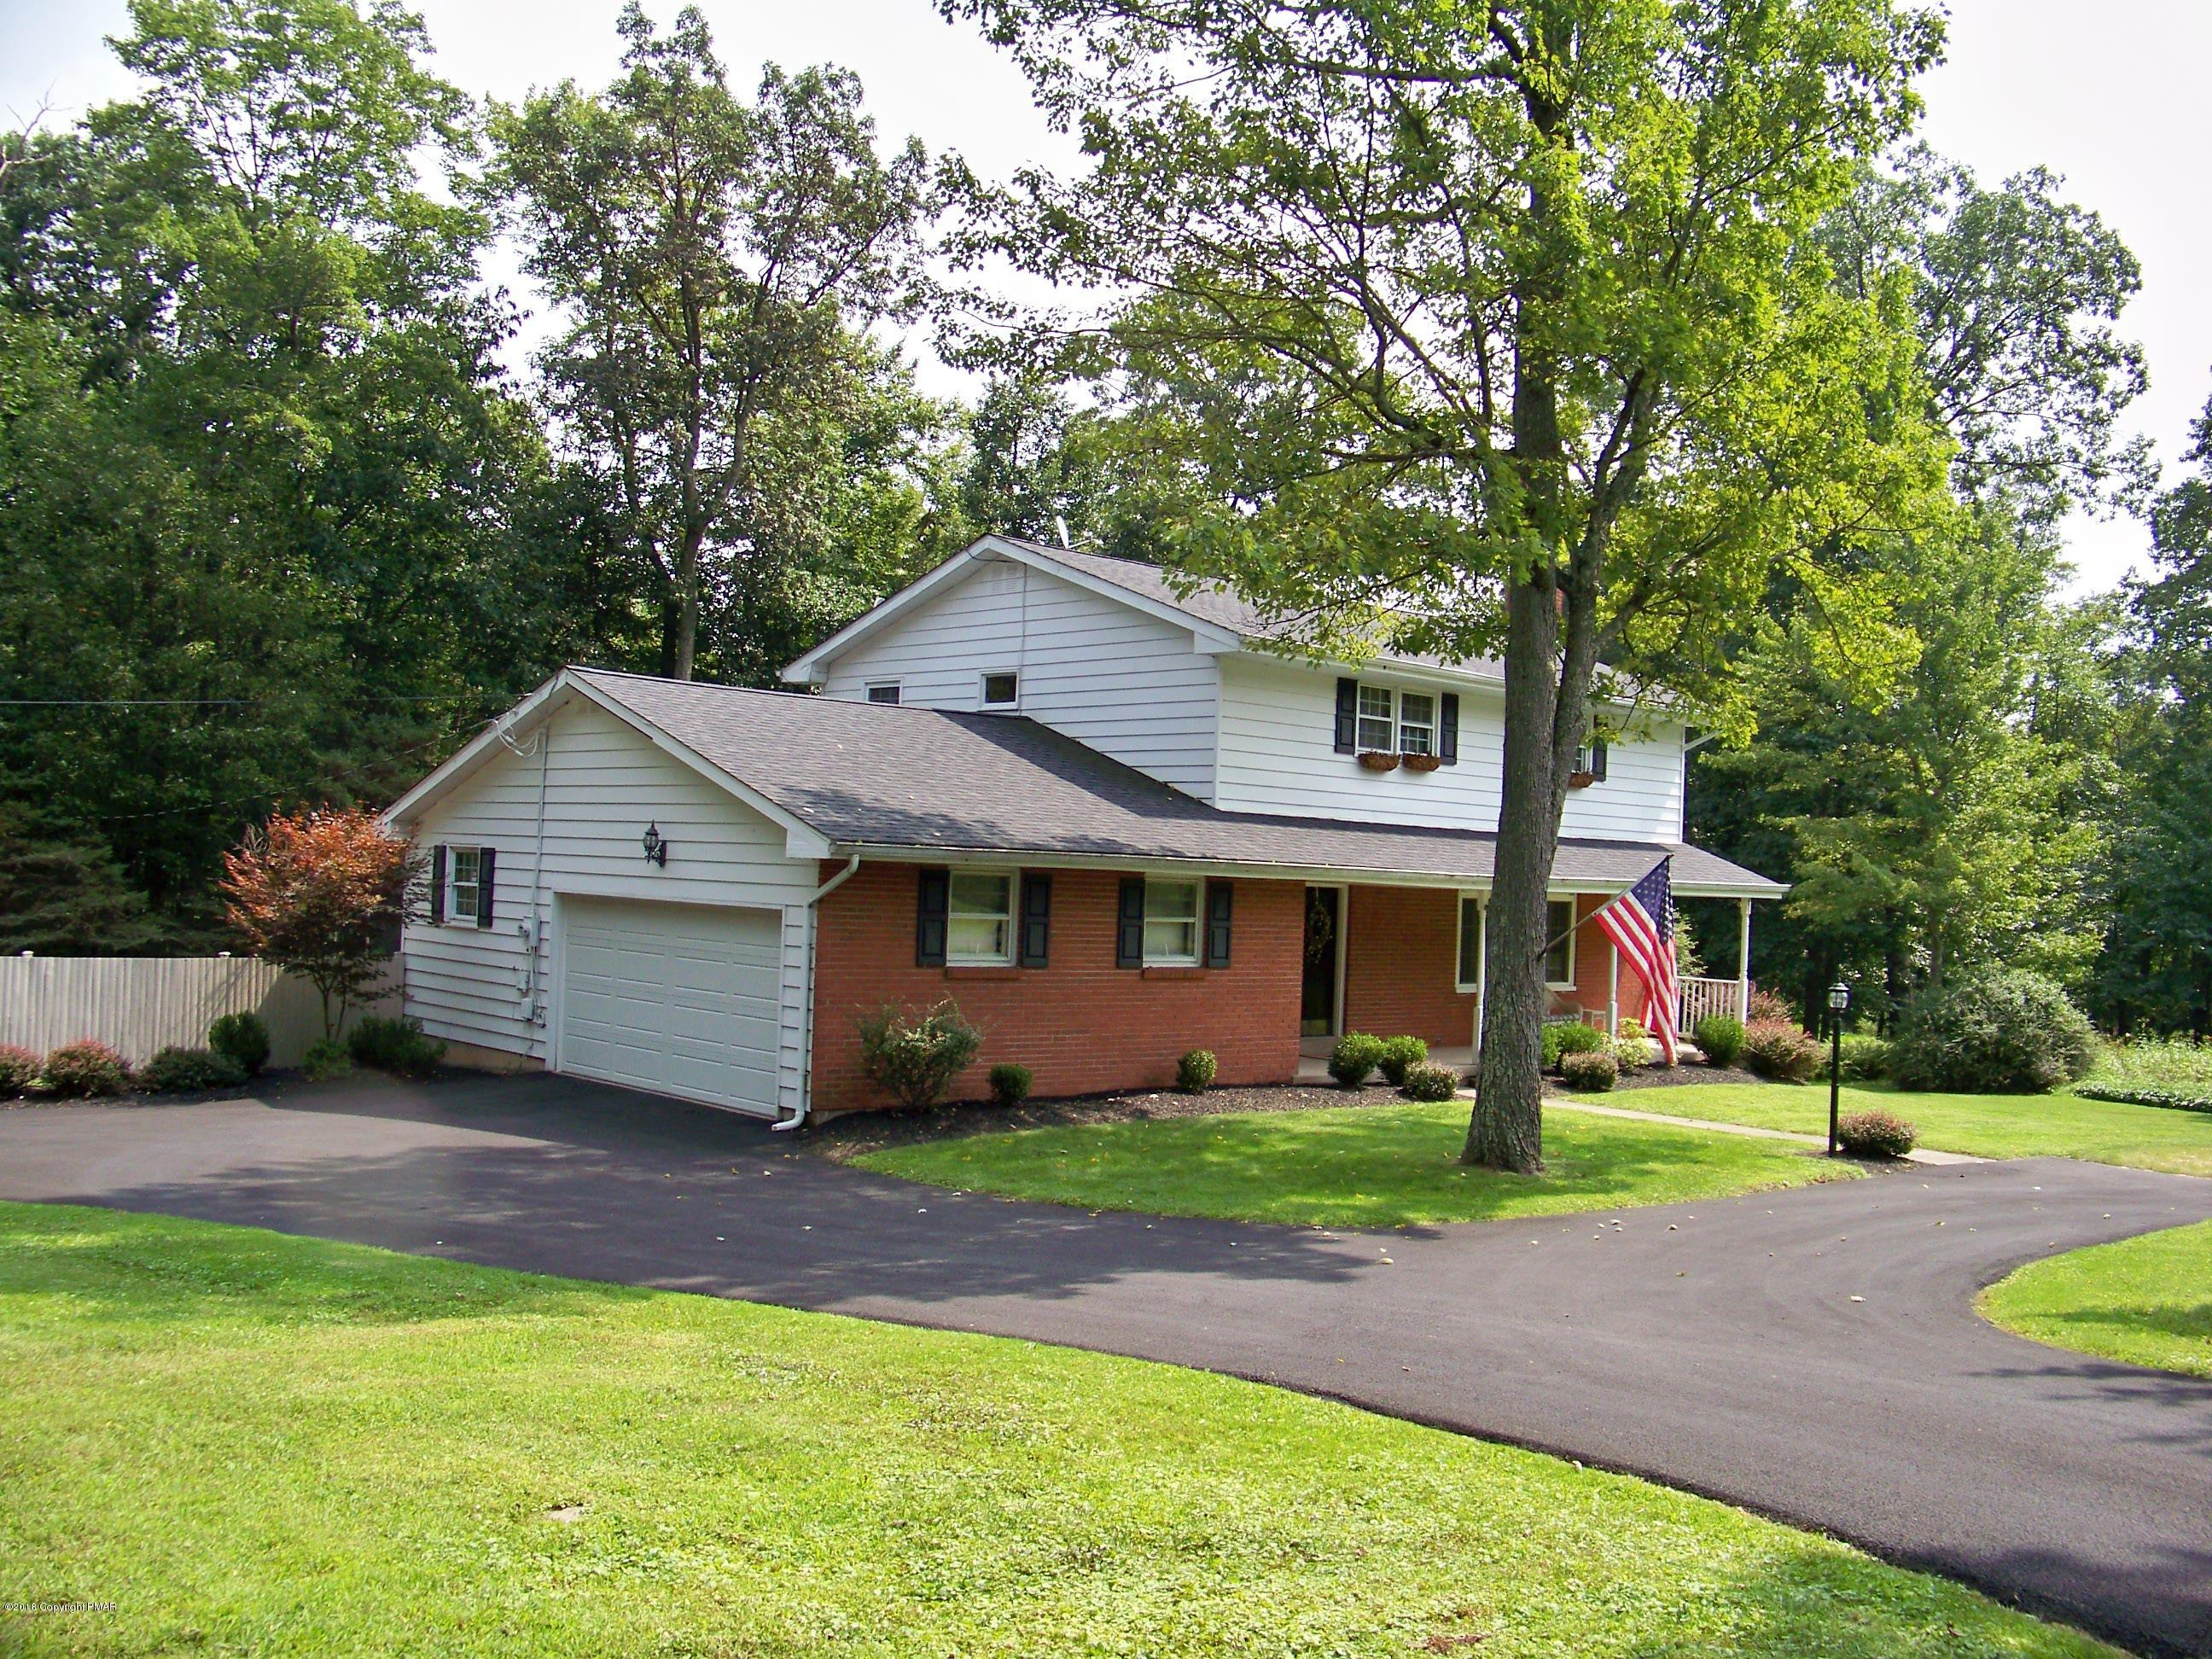 8104 Oak Ridge Ln, Cresco, PA 18326